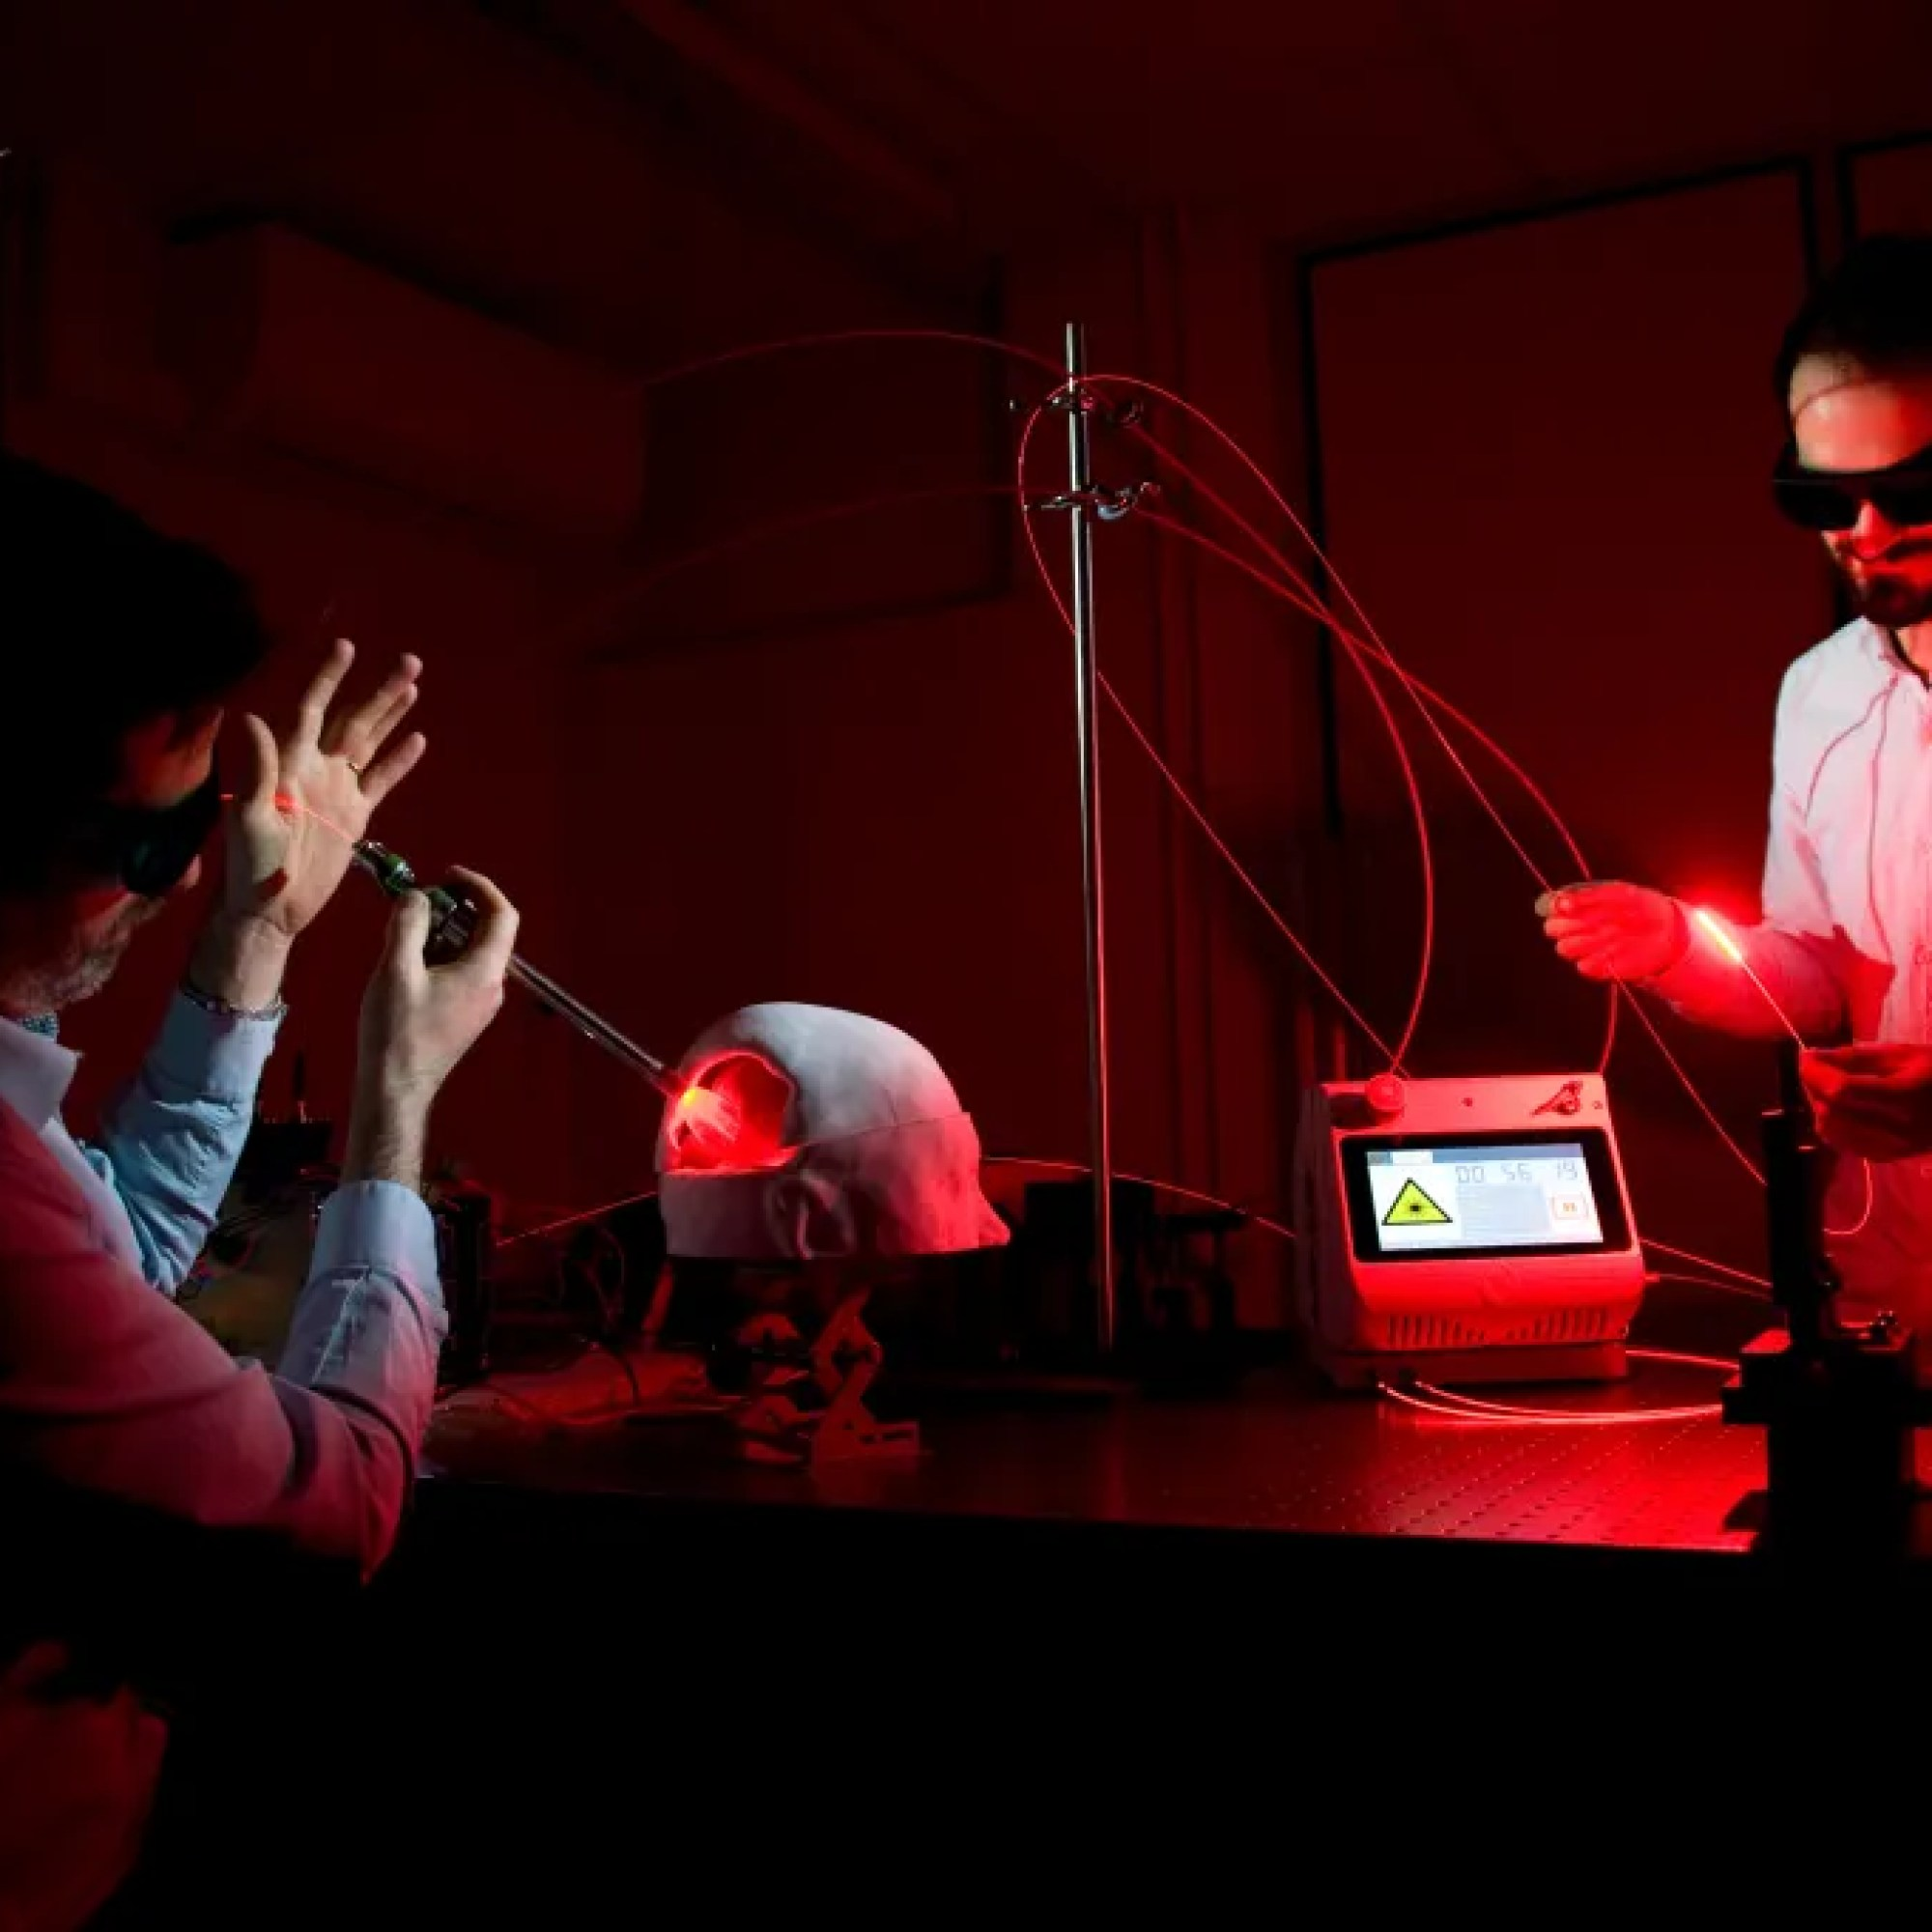 Hemerion develops innovative drug and photonics devices to treat cancer